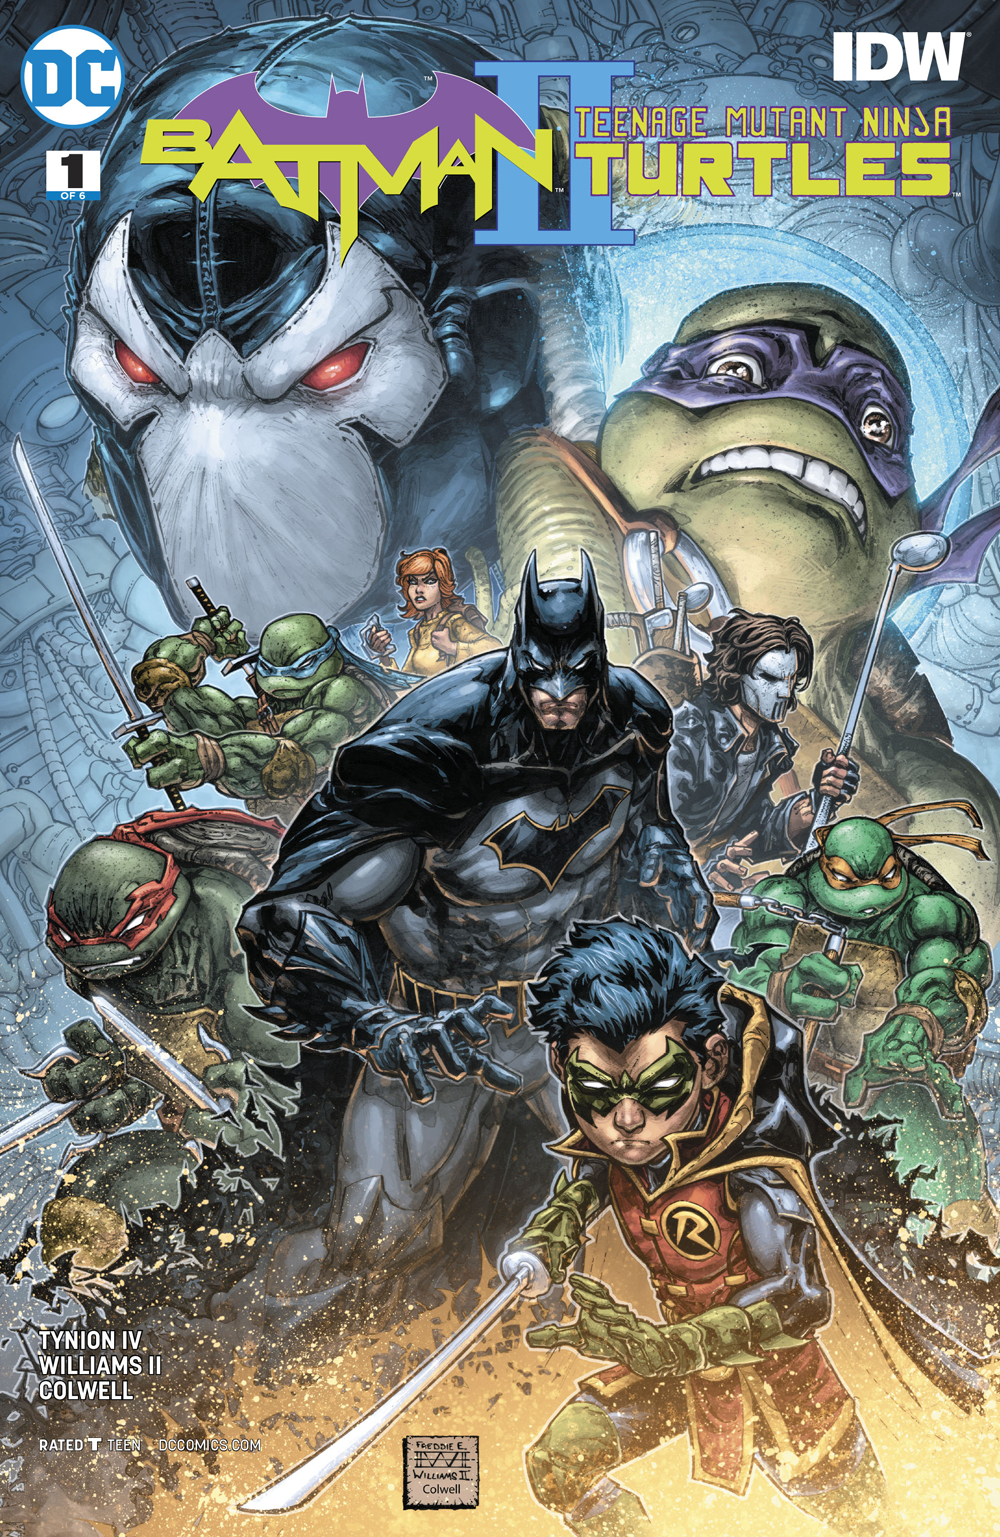 BATMAN TEENAGE MUTANT NINJA TURTLES II #1